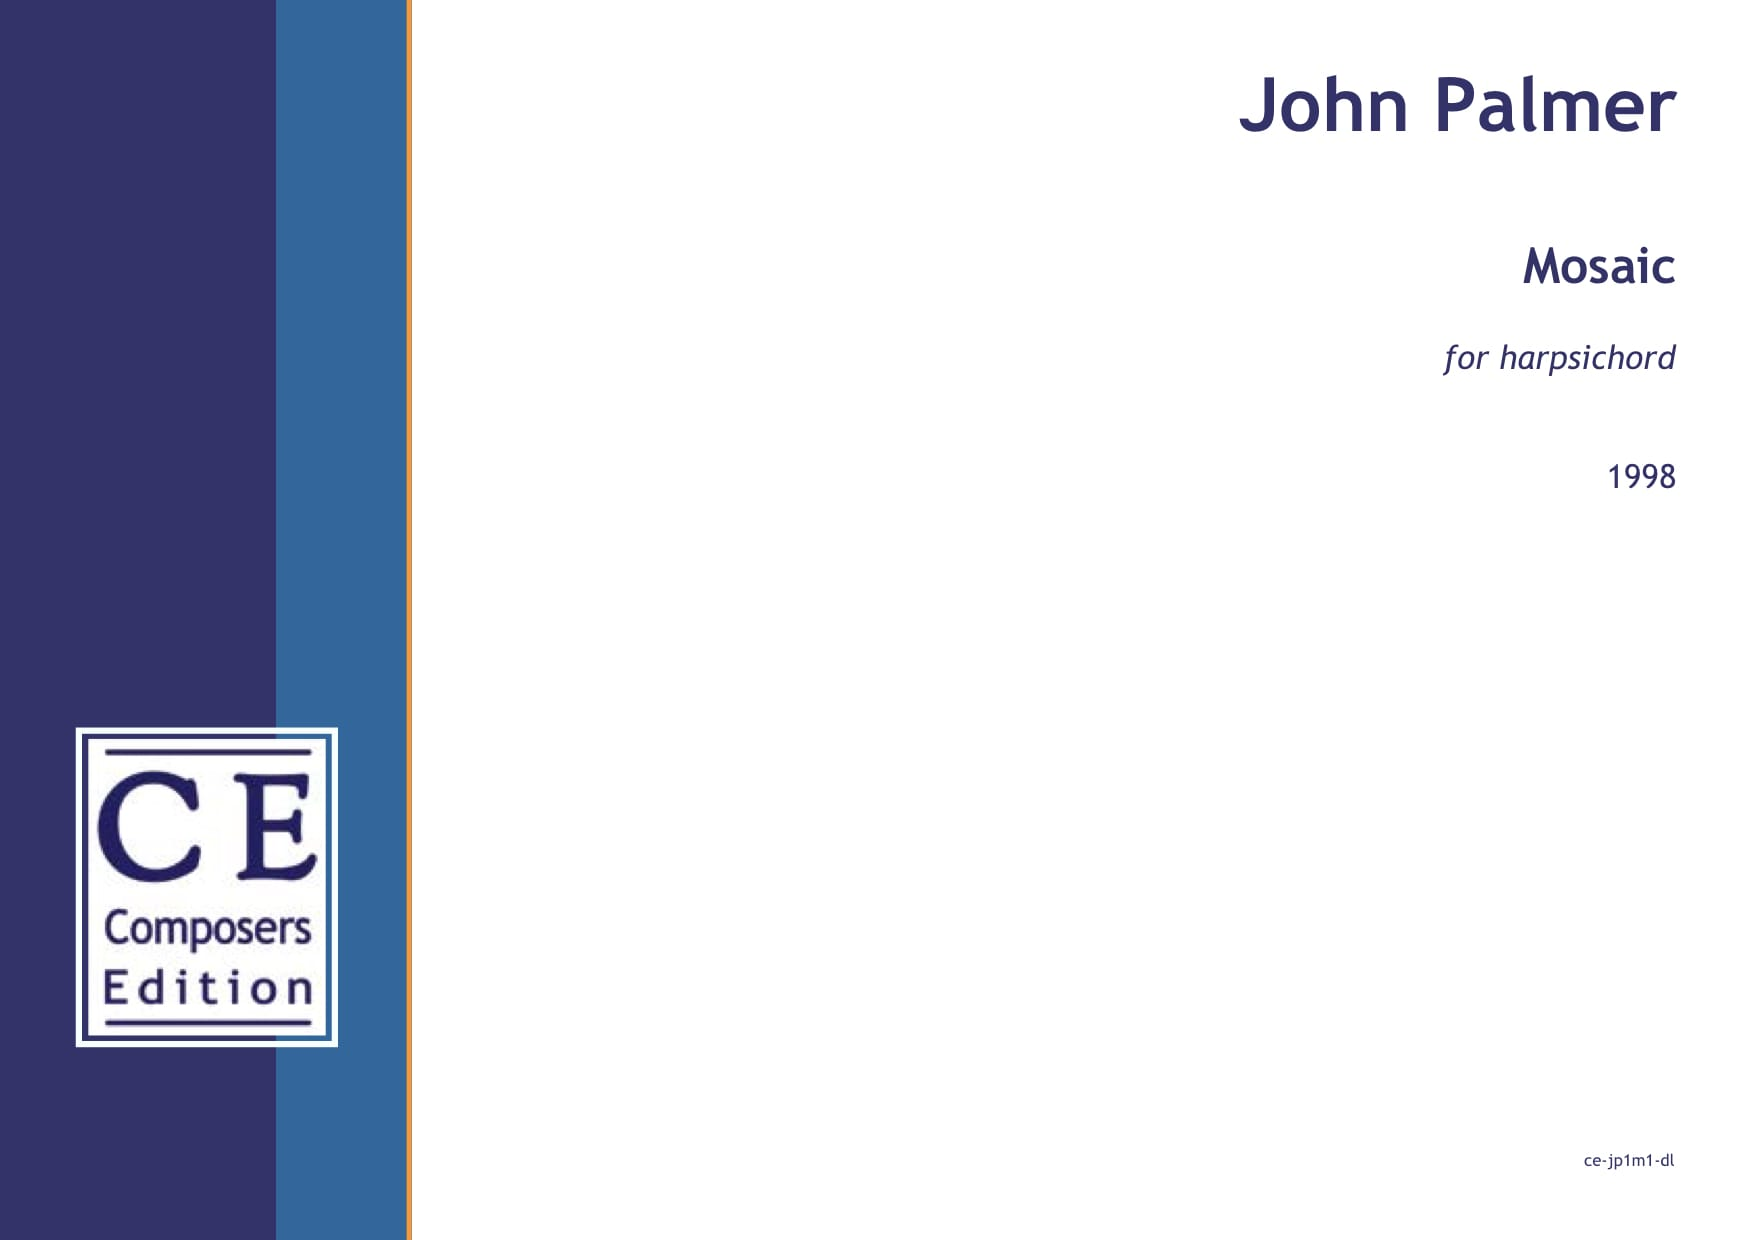 John Palmer: Mosaic for harpsichord